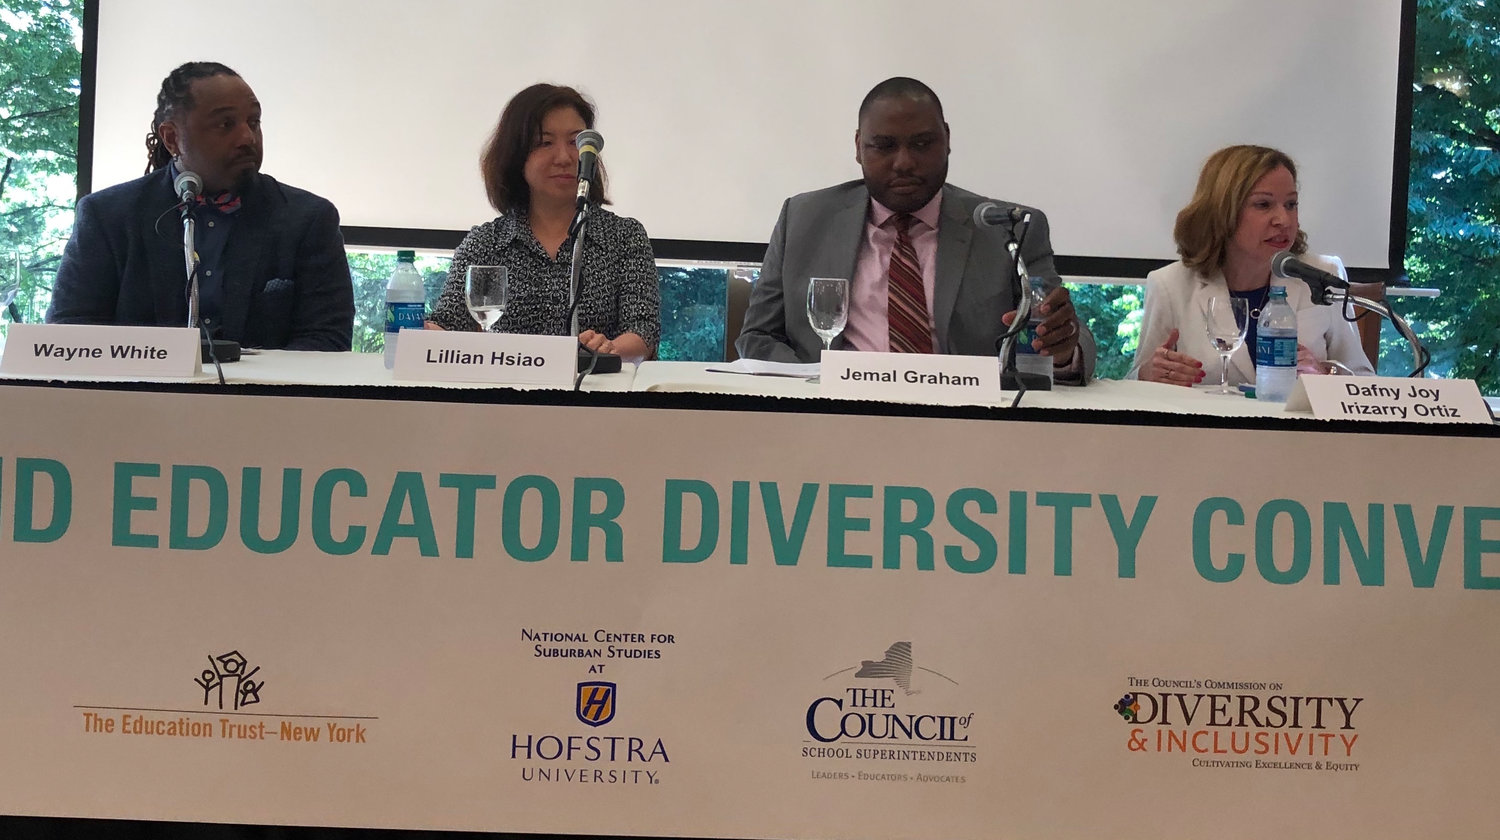 The lack of diversity in Long Island's teaching ranks was the subject of extensive discussion at the Long Island Educator Diversity Convening at Hofstra University last spring. Among the panelists were, from left, Wayne White, president of the Bellport Teachers Association; Lillian Hsiao, an English as a New Language teacher in the Great Neck School District; Jemal Graham, assistant principal at H.B. Thompson Middle School in the Syosset district; and Dafny Joy Irizarry Ortiz, an ENL teacher in the Central Islip district.